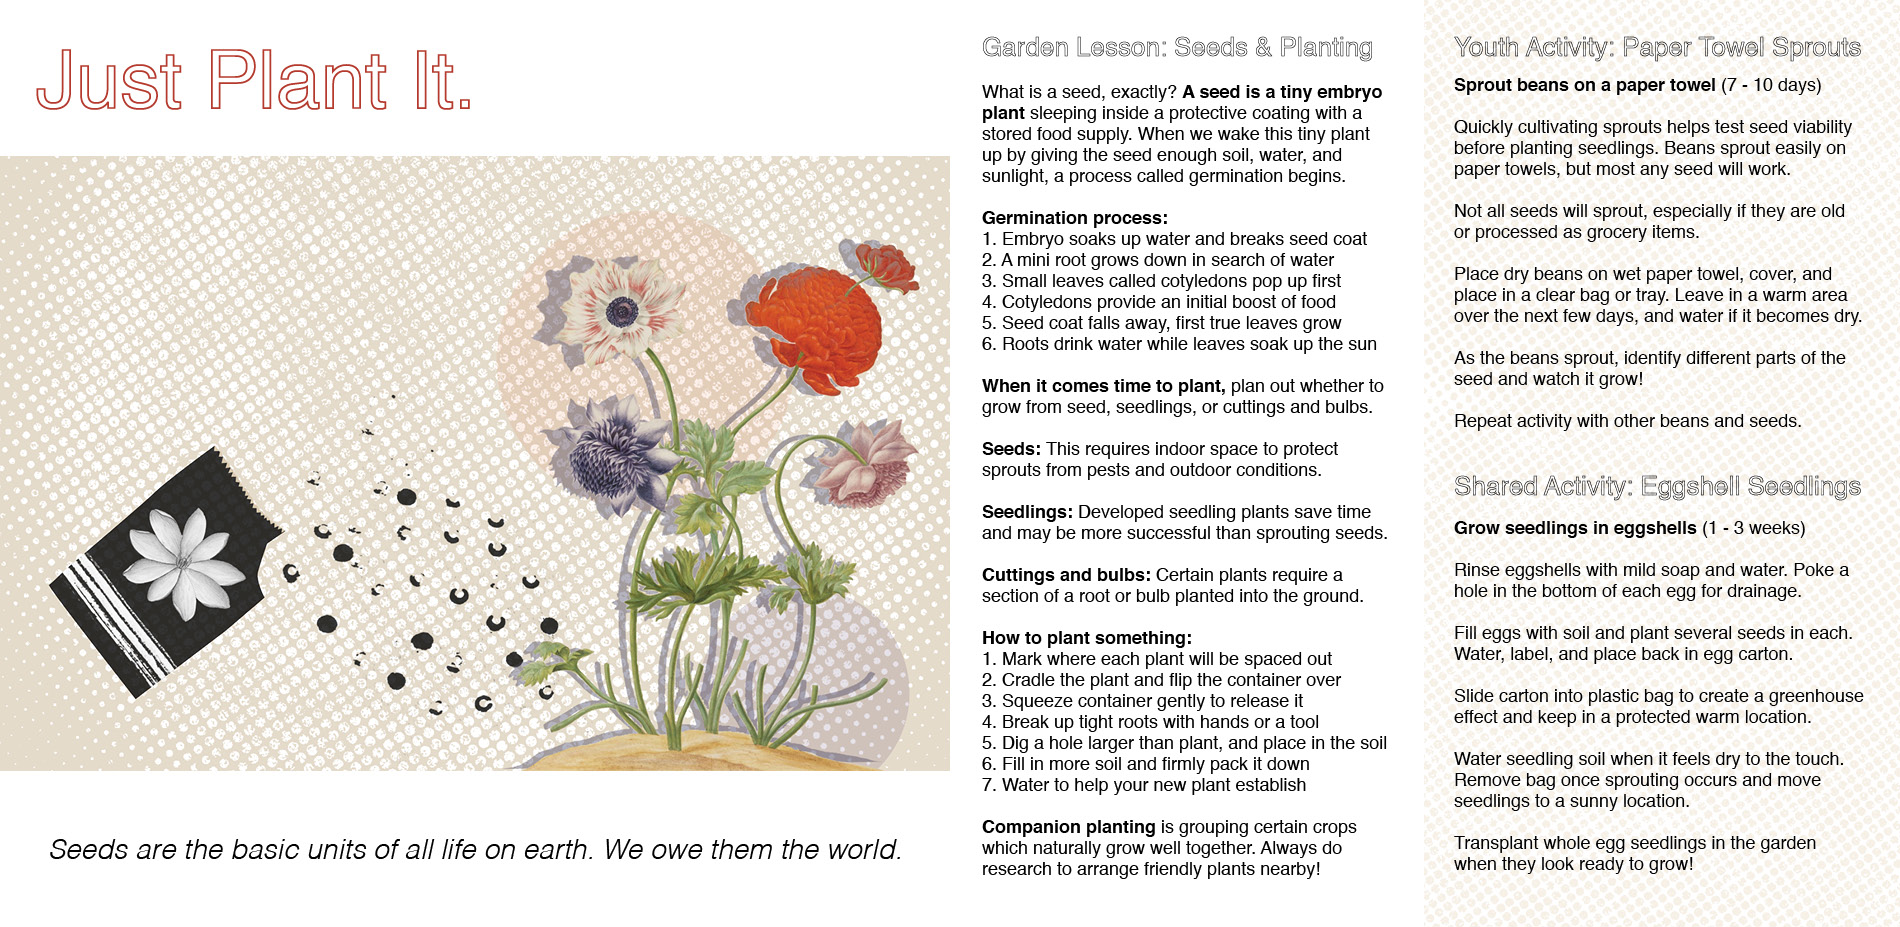 Just Plant It: Planting, Seeding, and Growing